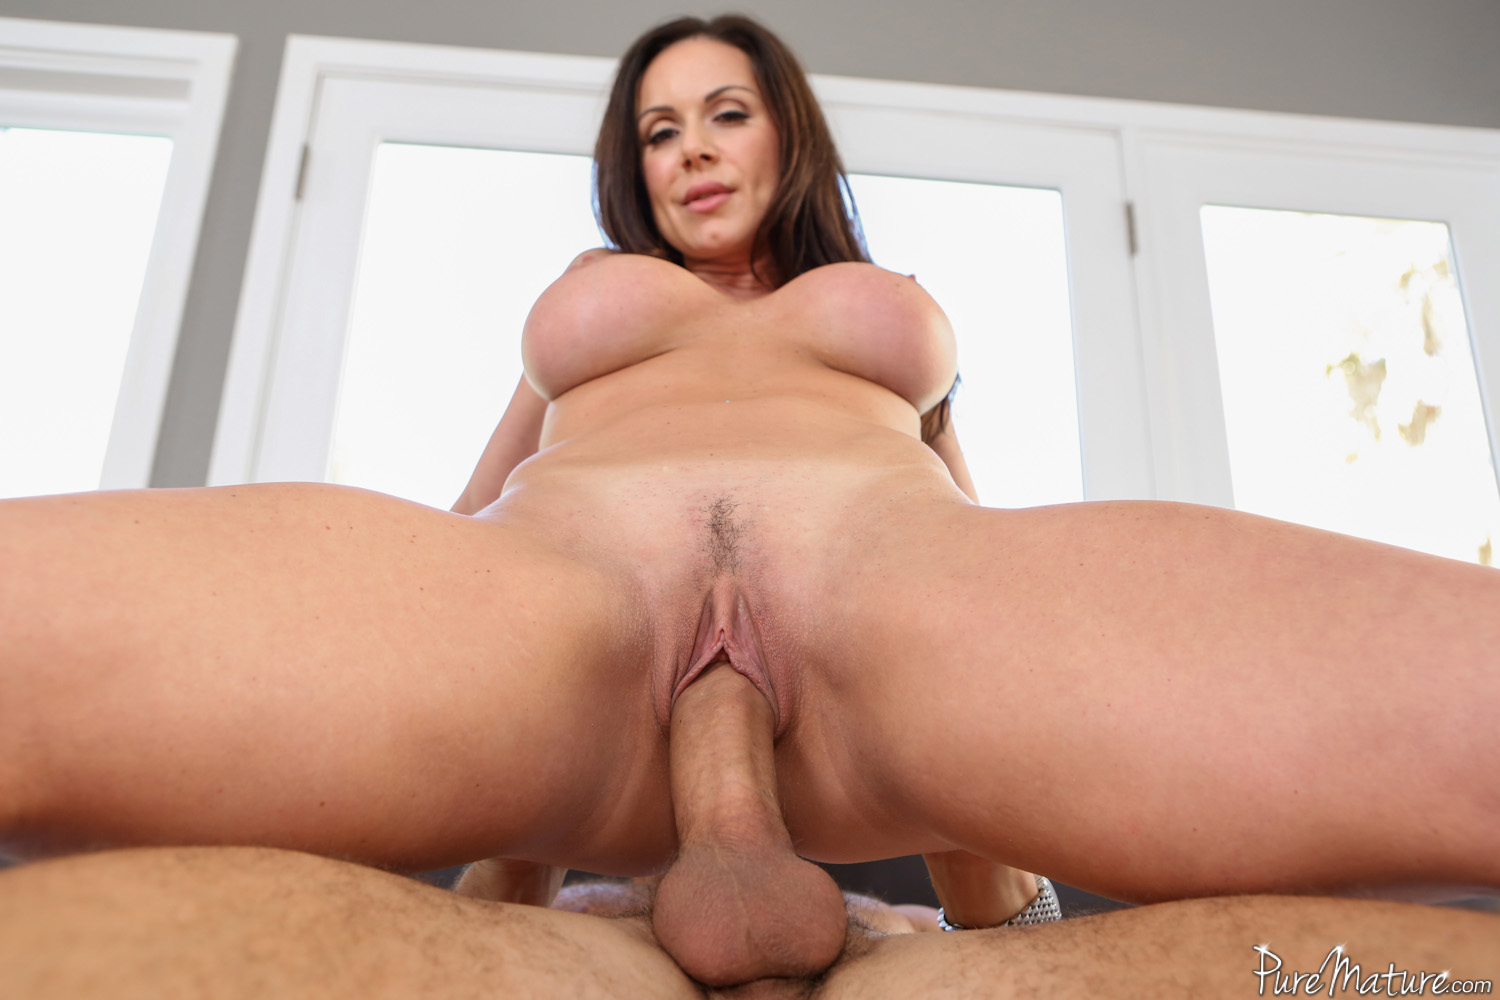 Hd puremature sexy milf amber cox fantasizes about big cock 7